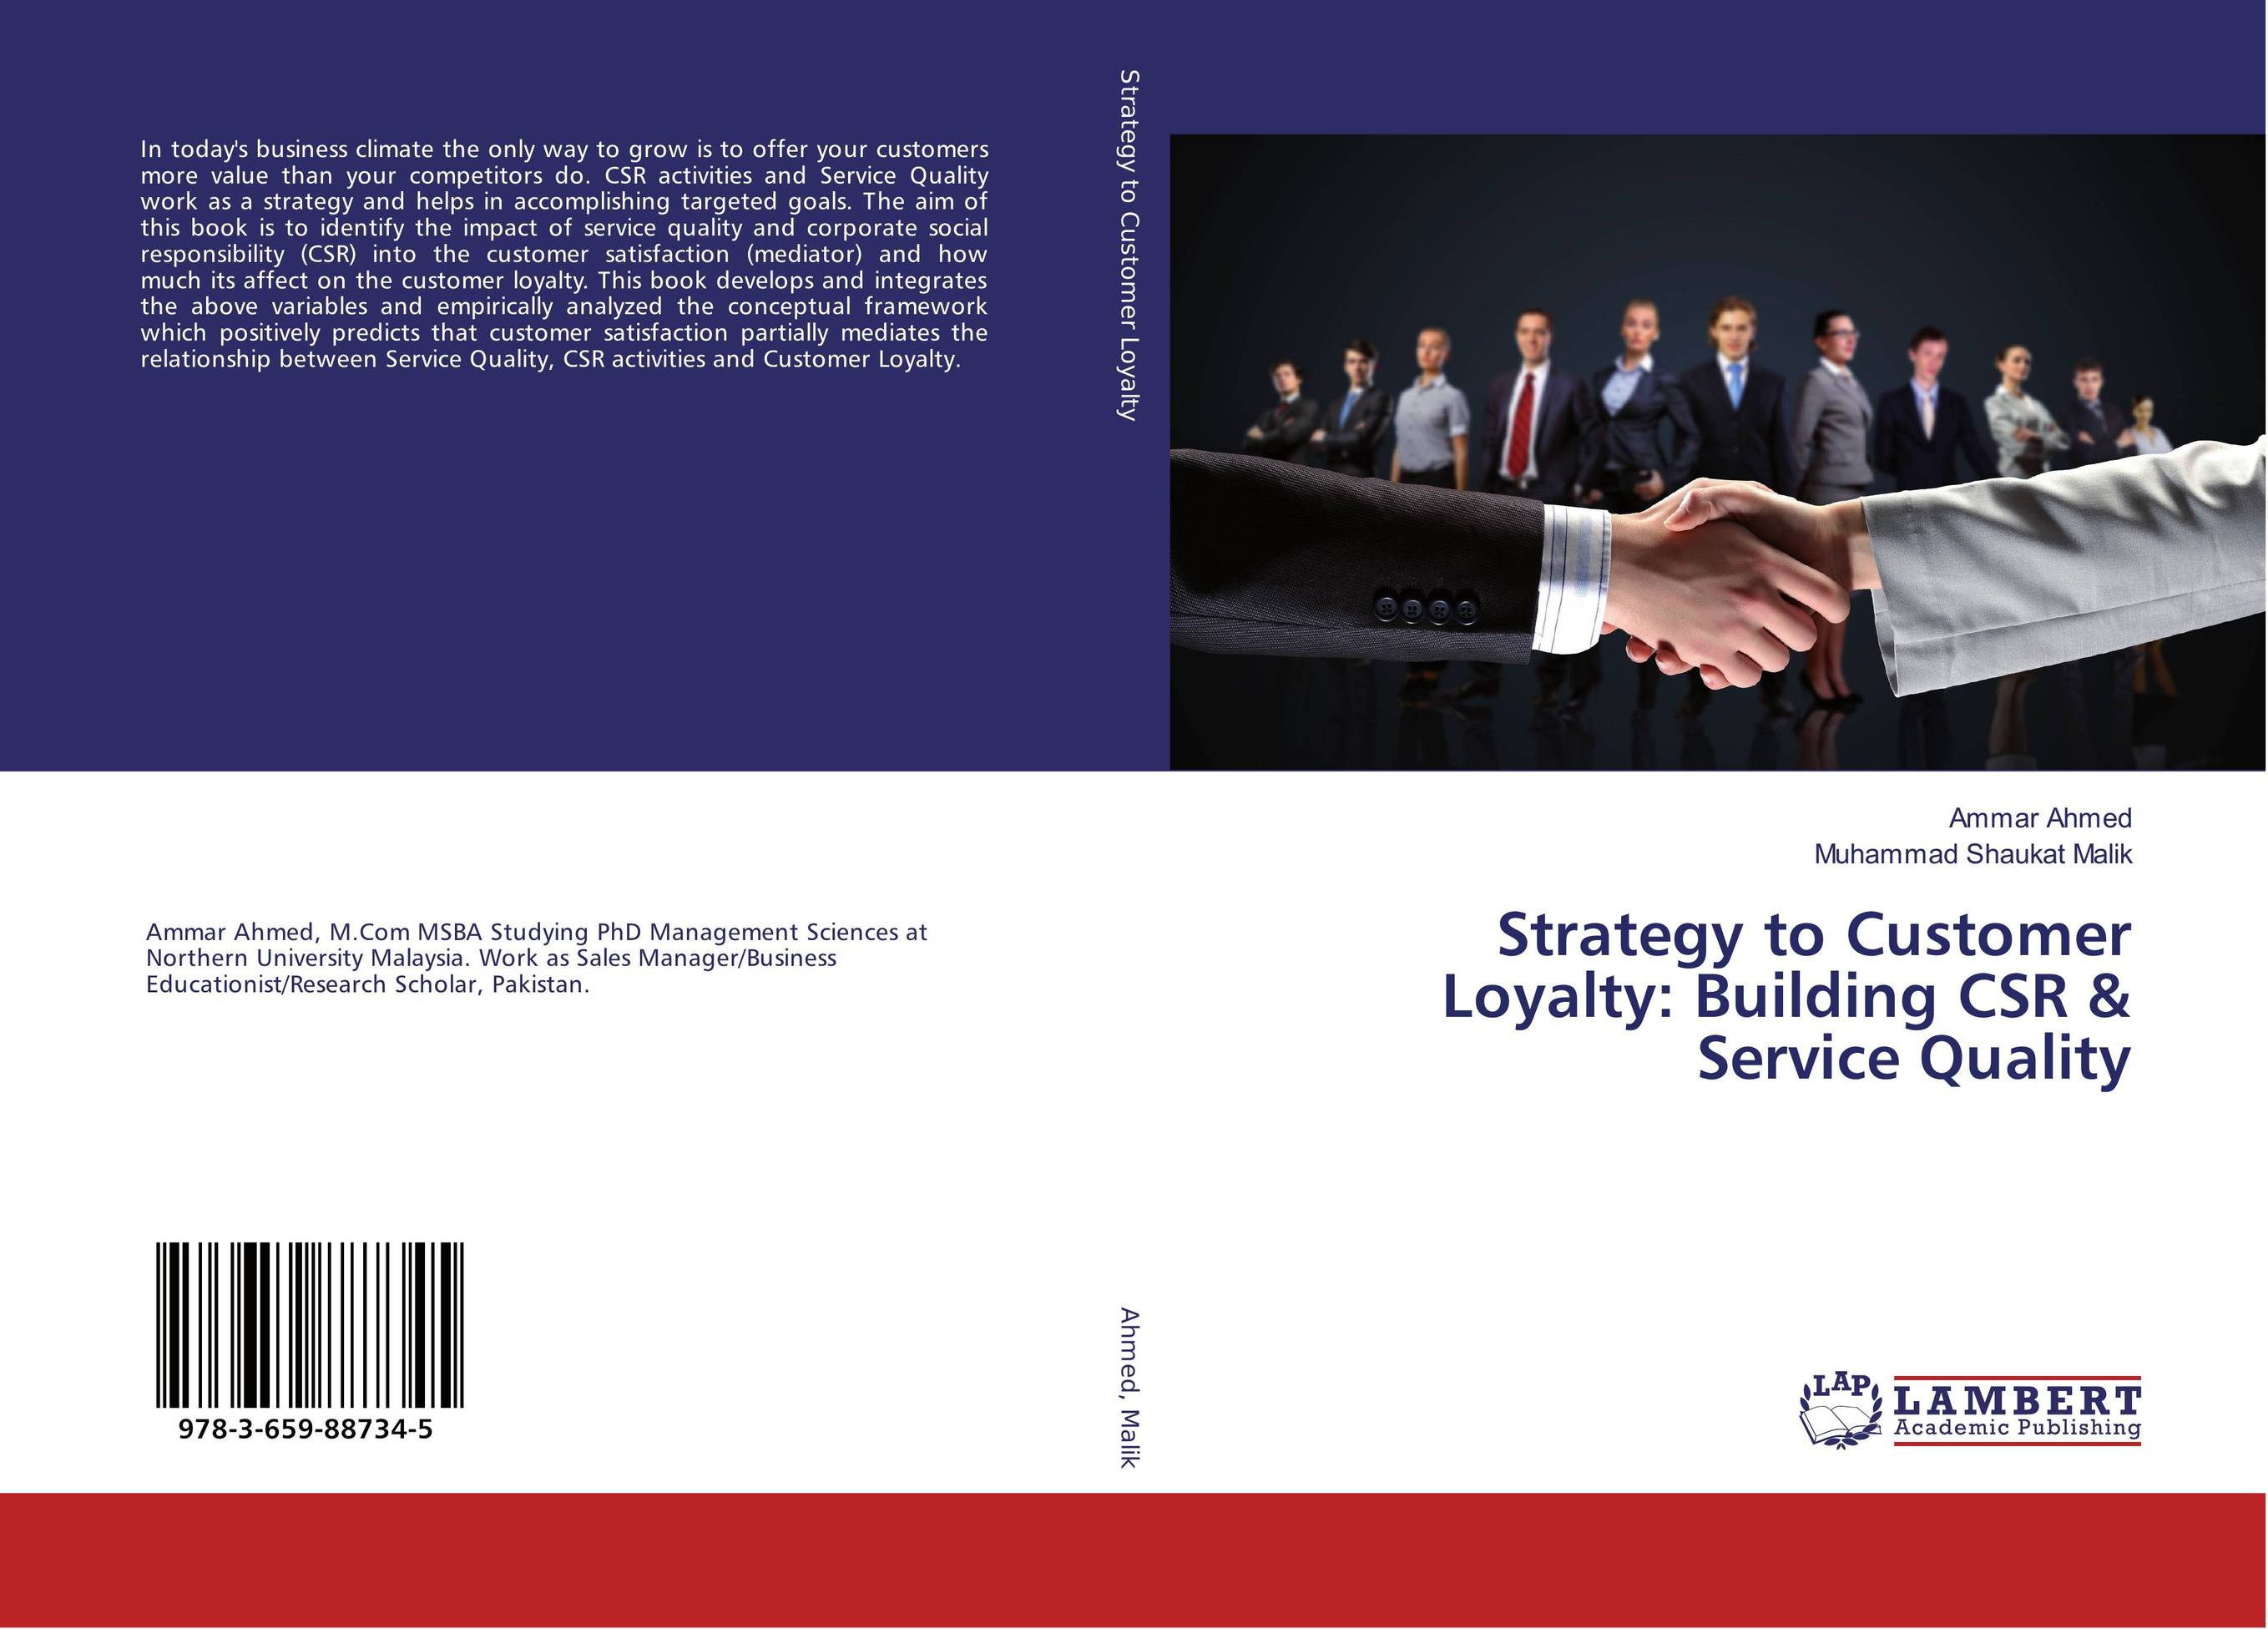 Strategy to Customer Loyalty: Building CSR & Service Quality adding customer value through effective distribution strategy